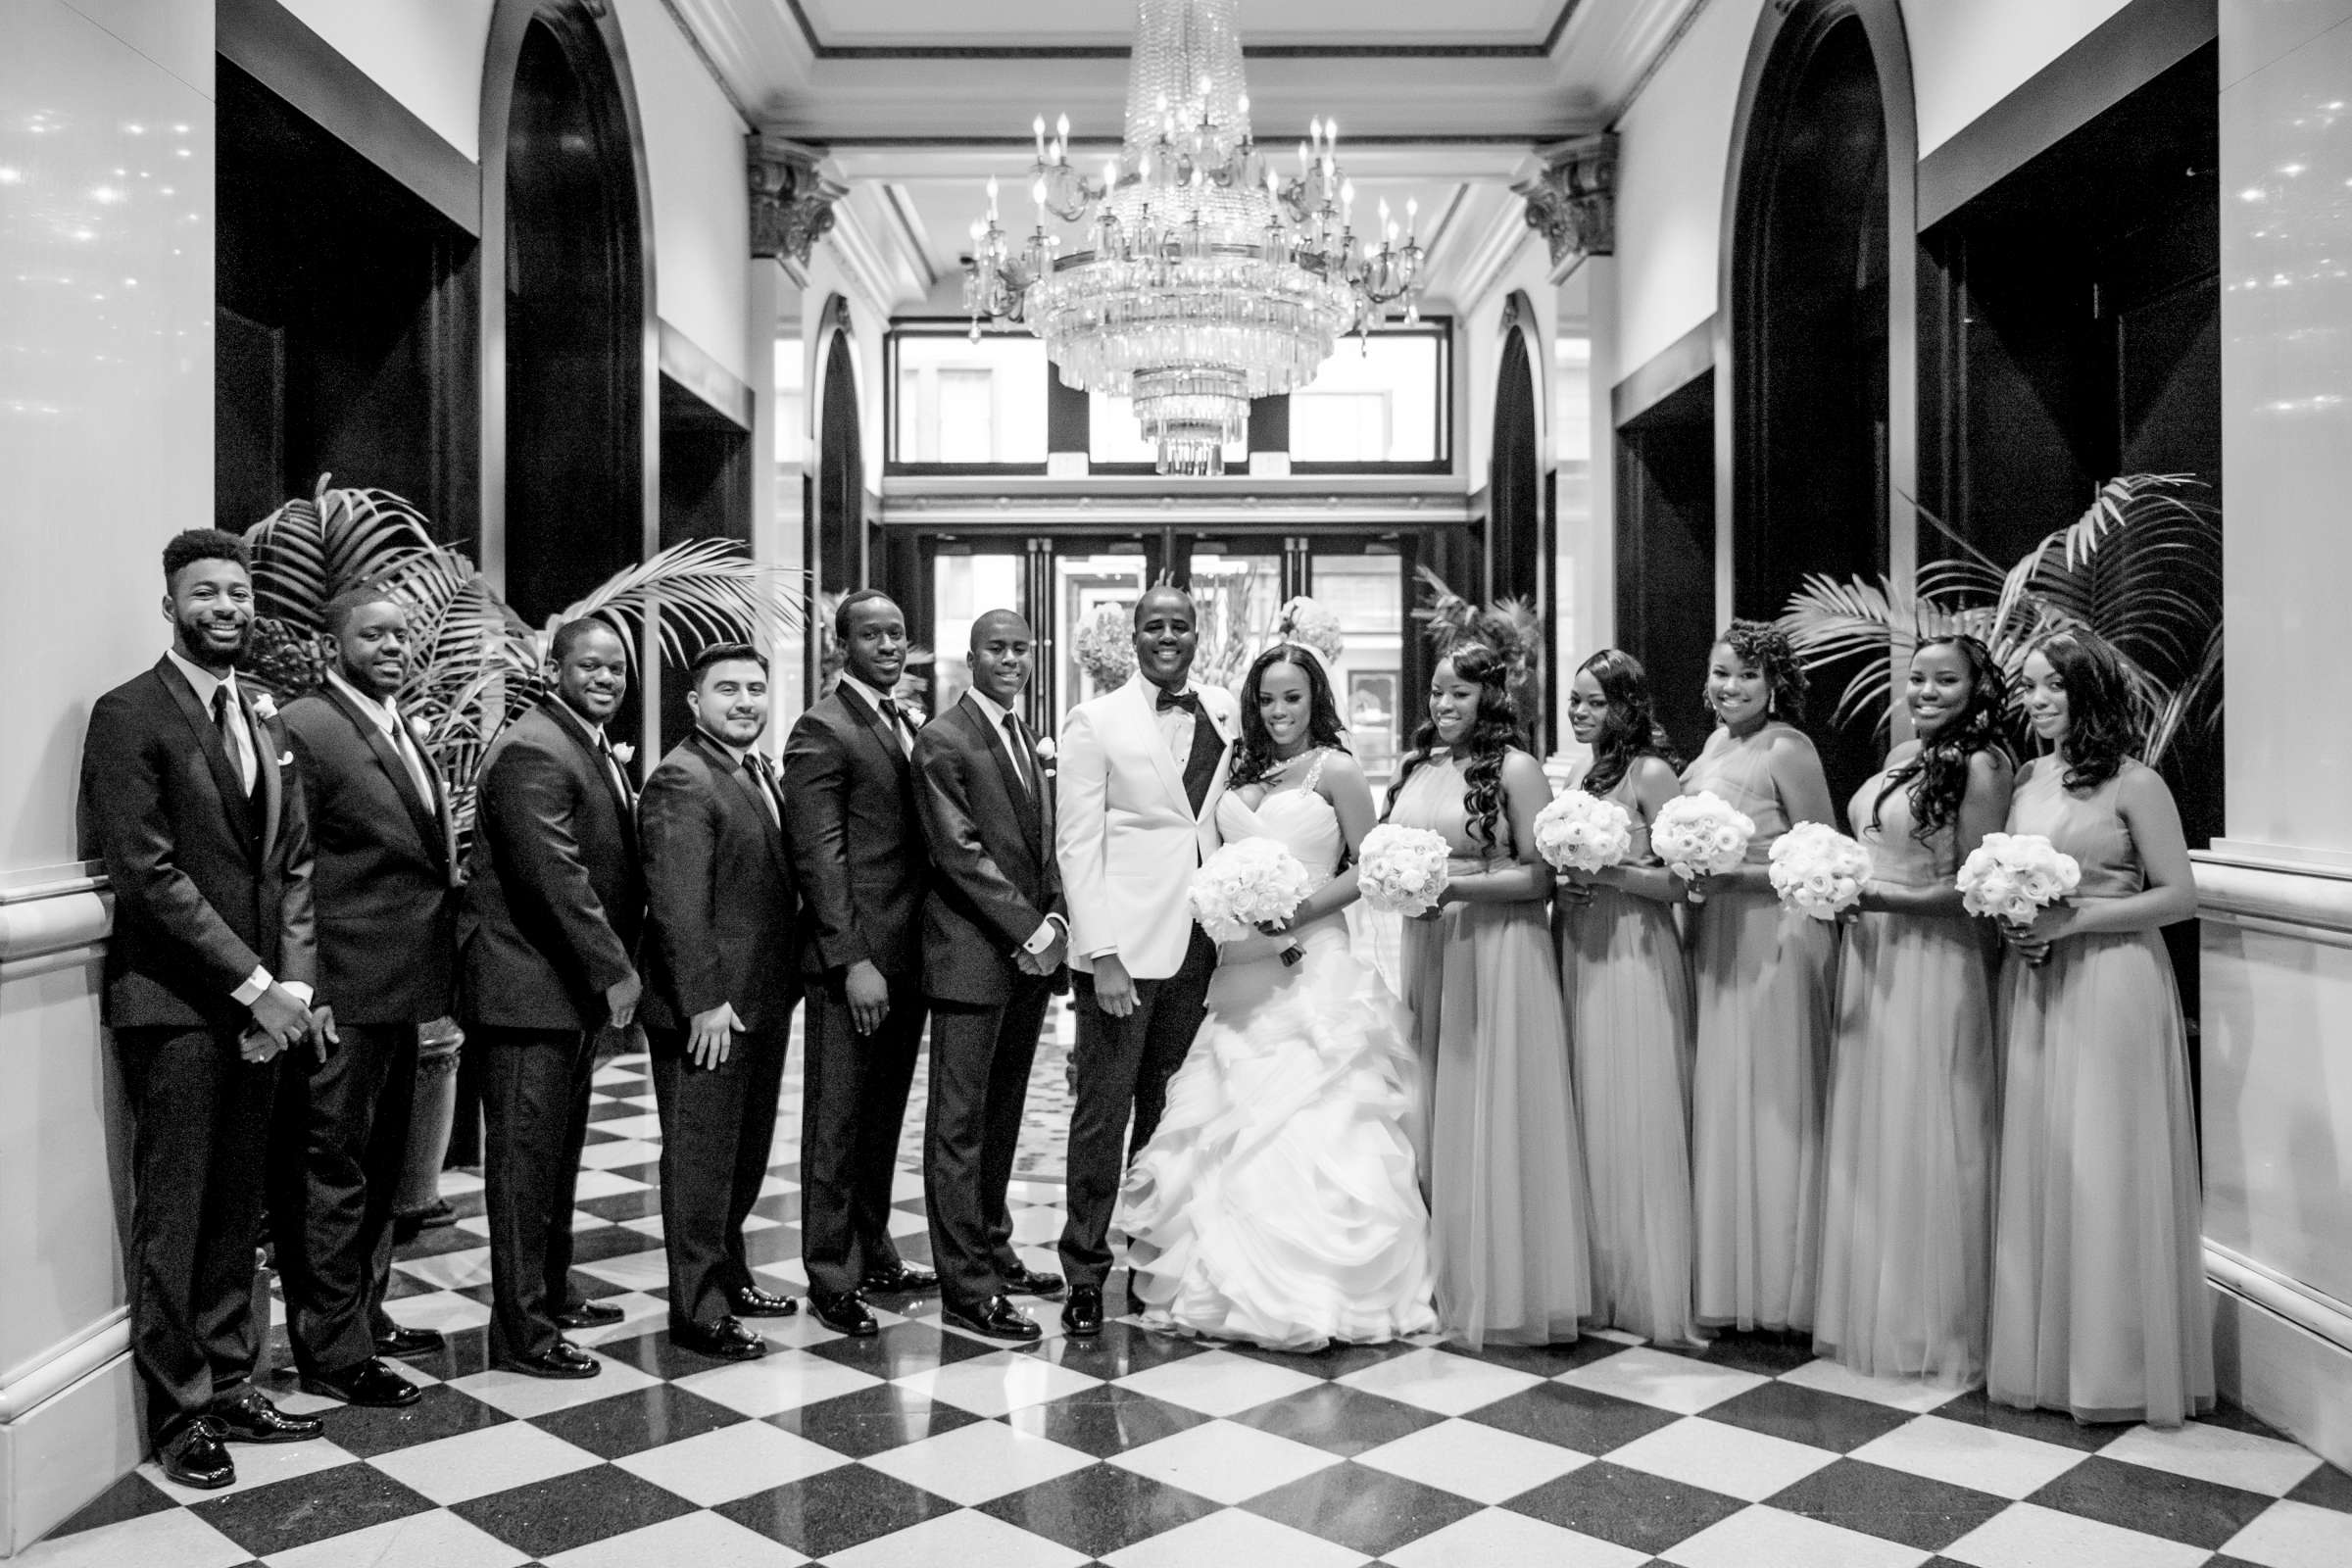 Coronado Community Center Wedding coordinated by First Comes Love Weddings & Events, Nikia and Charles Wedding Photo #39 by True Photography